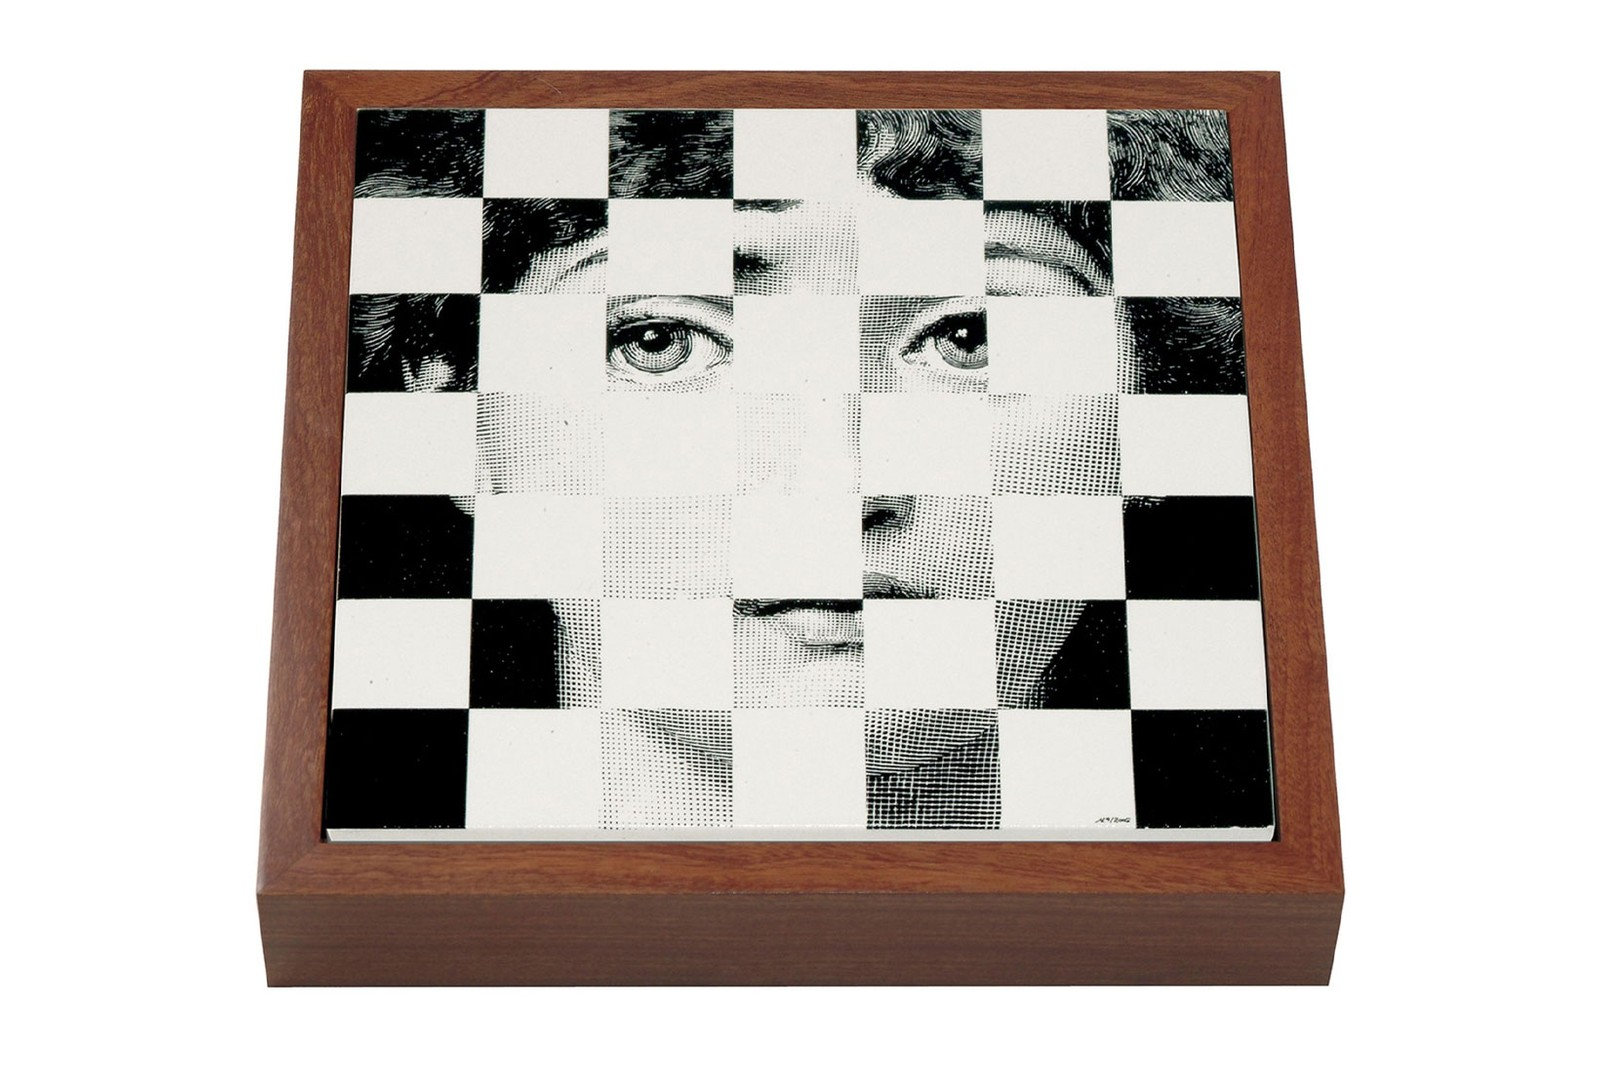 chess checker board games sets the queens gambit netflix chic home decor luxury design hermes louis vuitton tiffany co